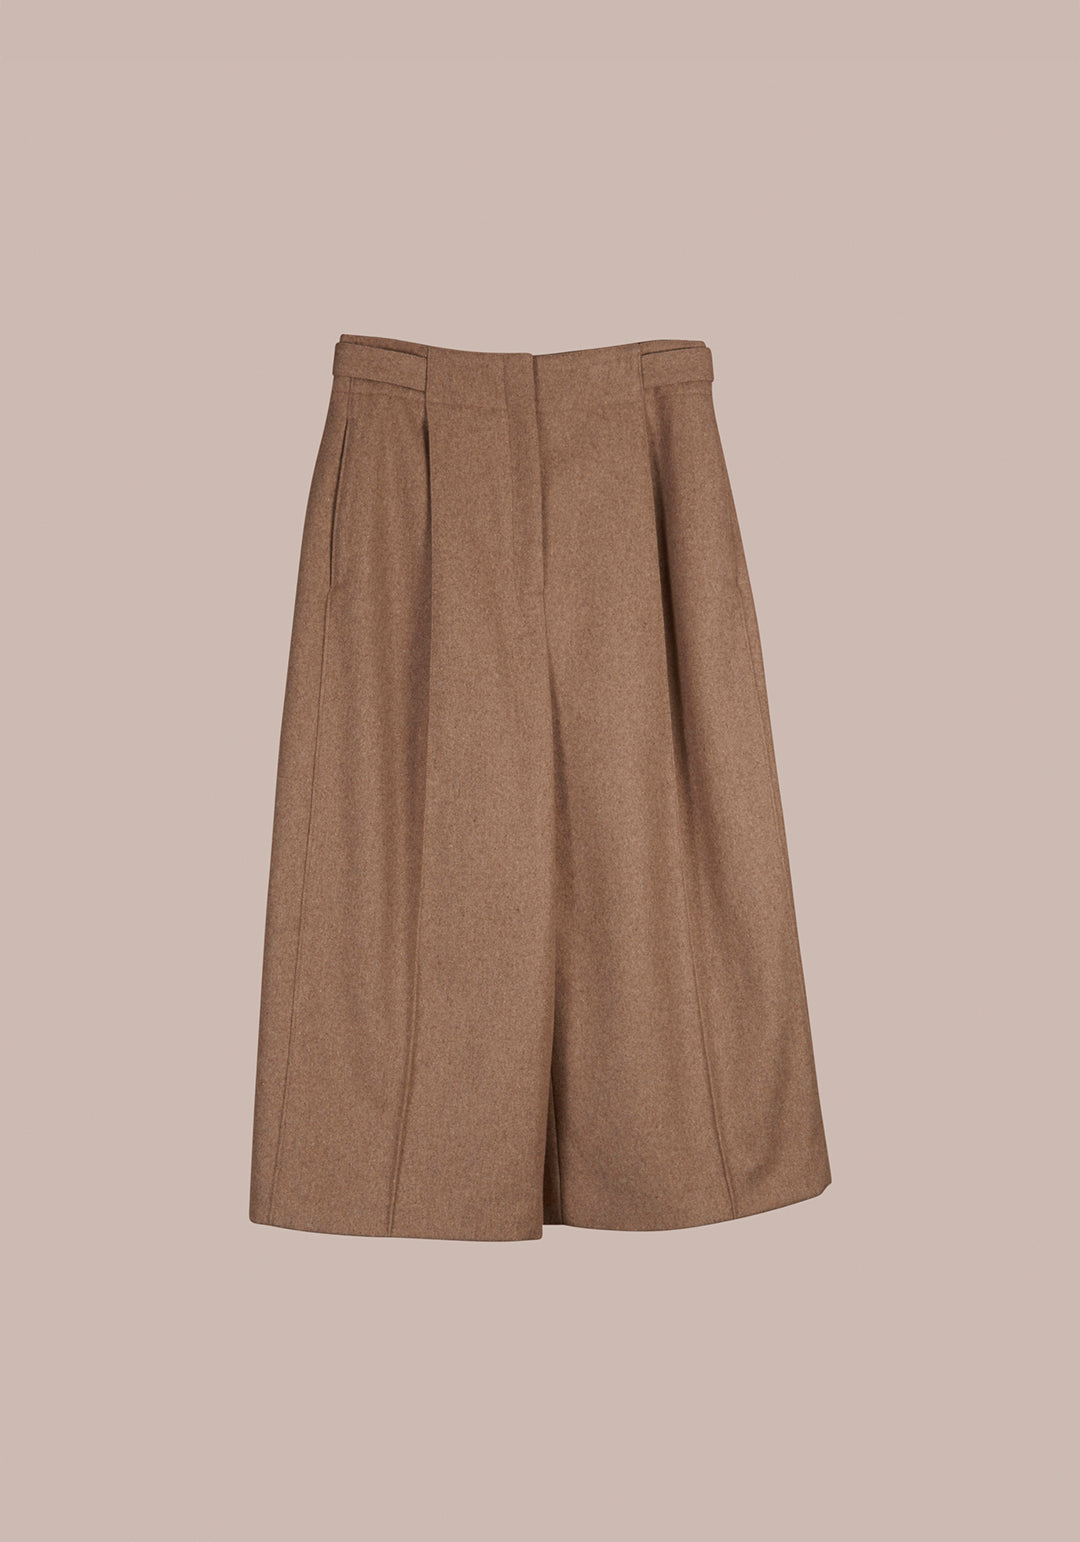 Lemaire, One Pleat Bermuda